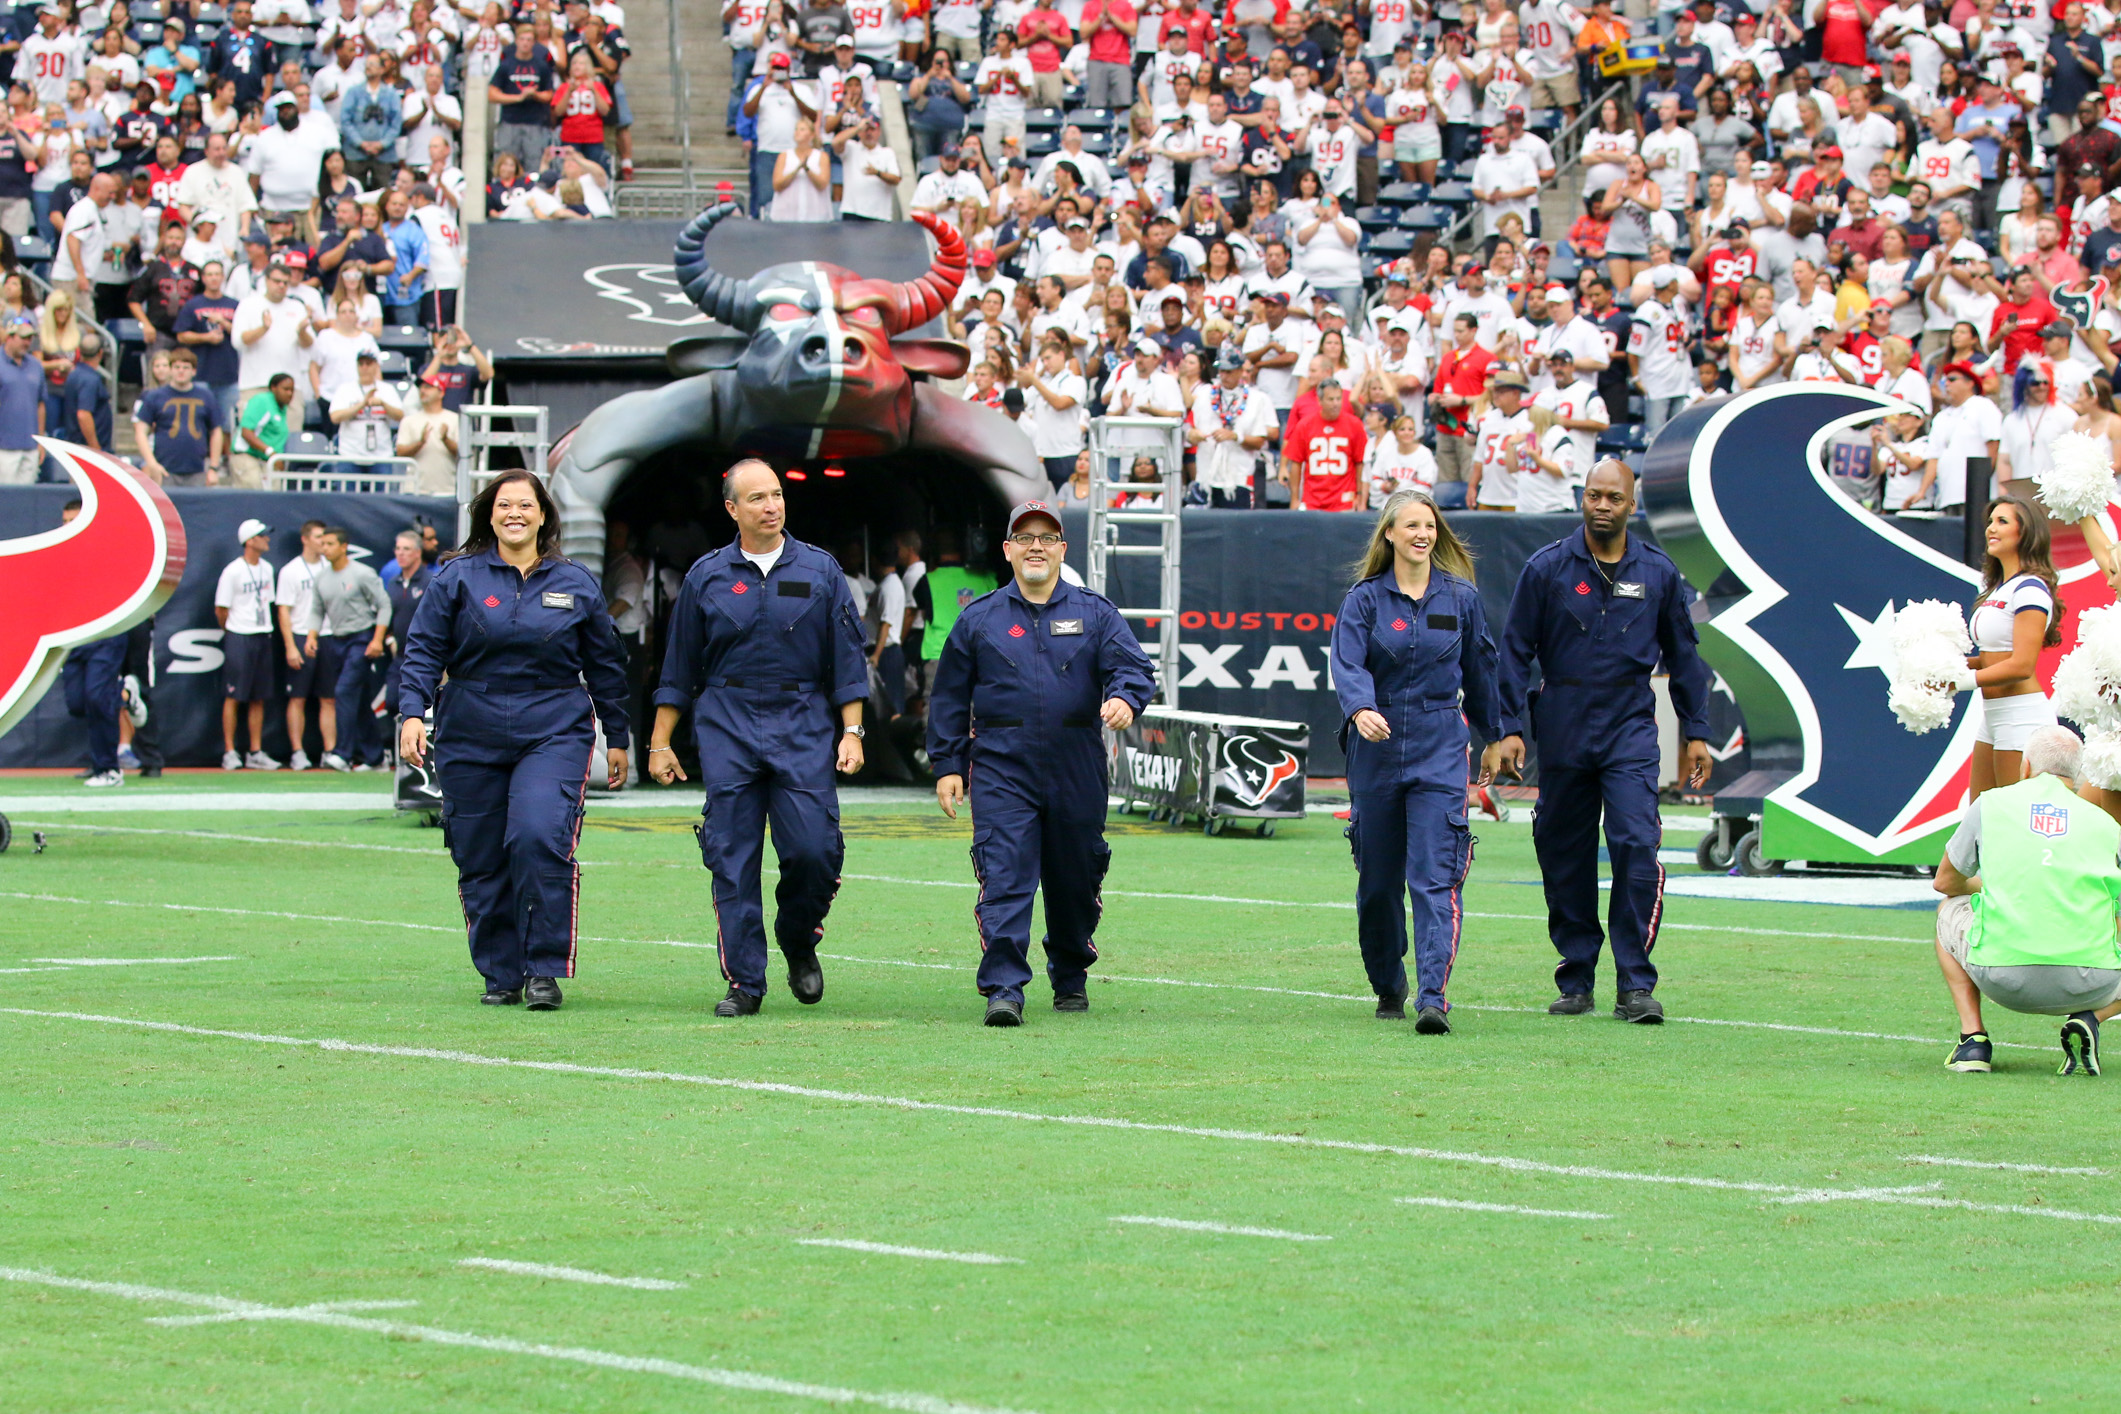 Texas Children's Kangaroo Crew serves as Houston Texans Honorary Team Captains in the season opener on September 13, 2015